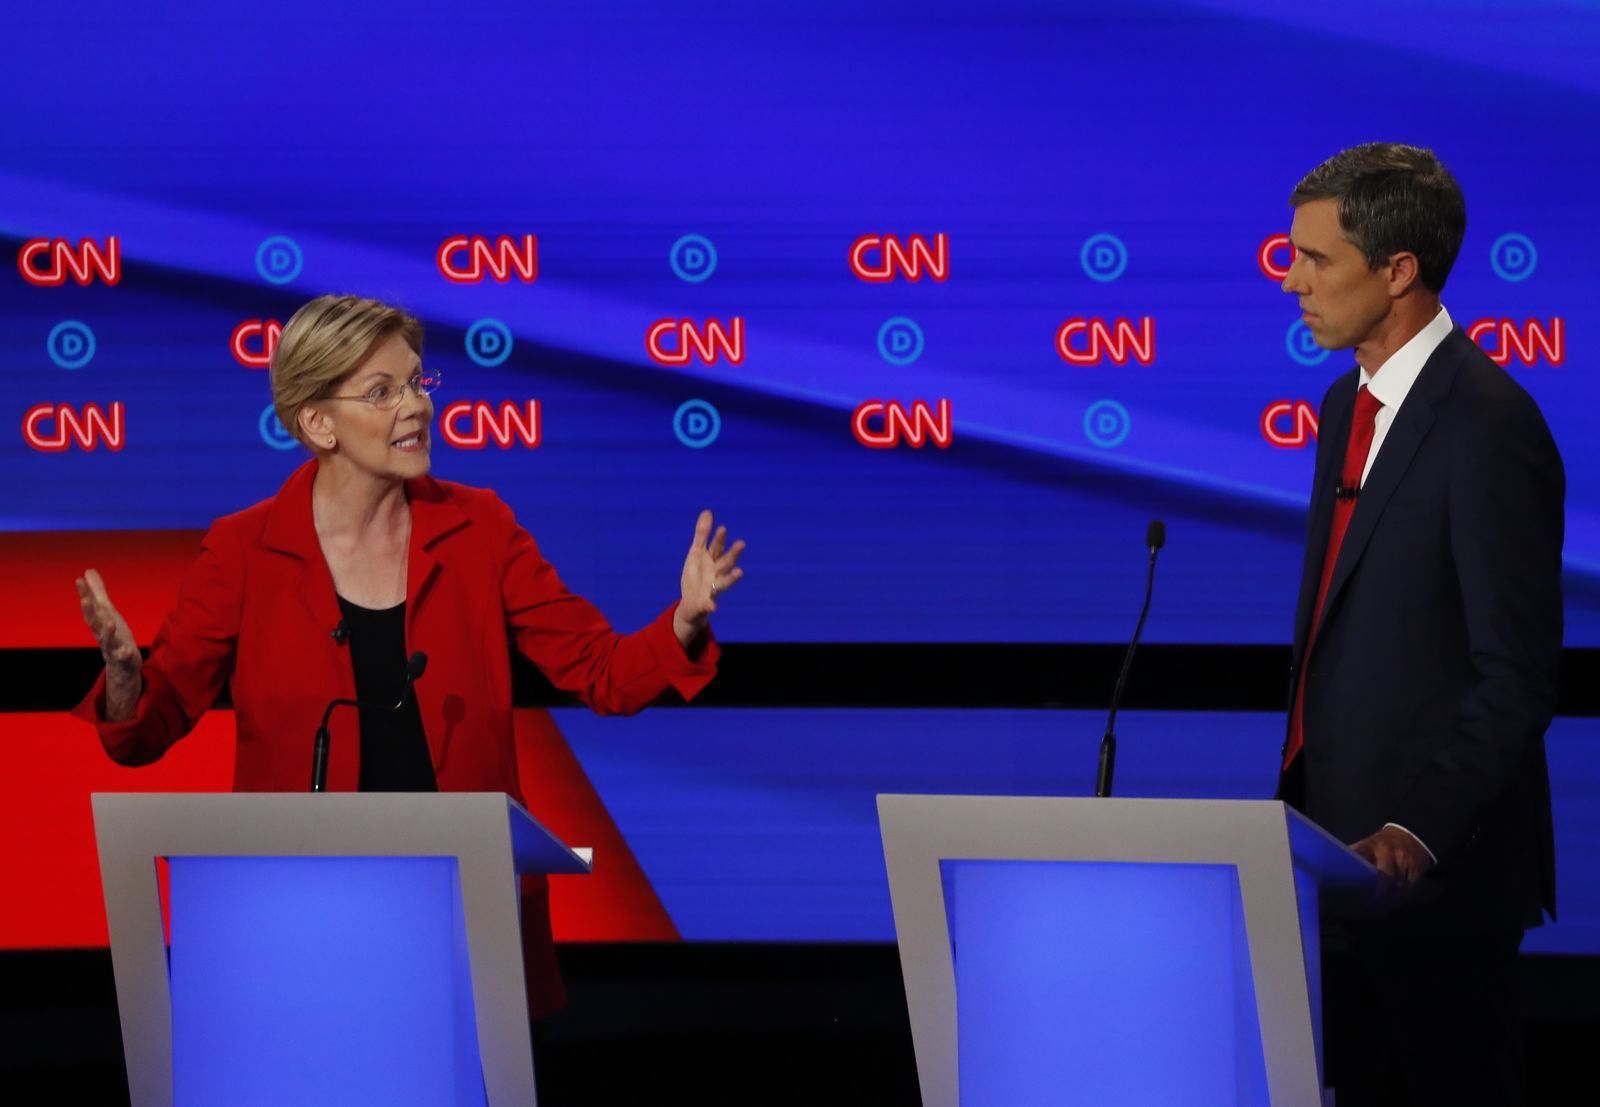 Former Texas Rep. Beto O'Rourke listens as Sen. Elizabeth Warren, D-Mass., speaks during the first of two Democratic presidential primary debates hosted by CNN Tuesday, July 30, 2019, in the Fox Theatre in Detroit. (AP Photo/Paul Sancya)